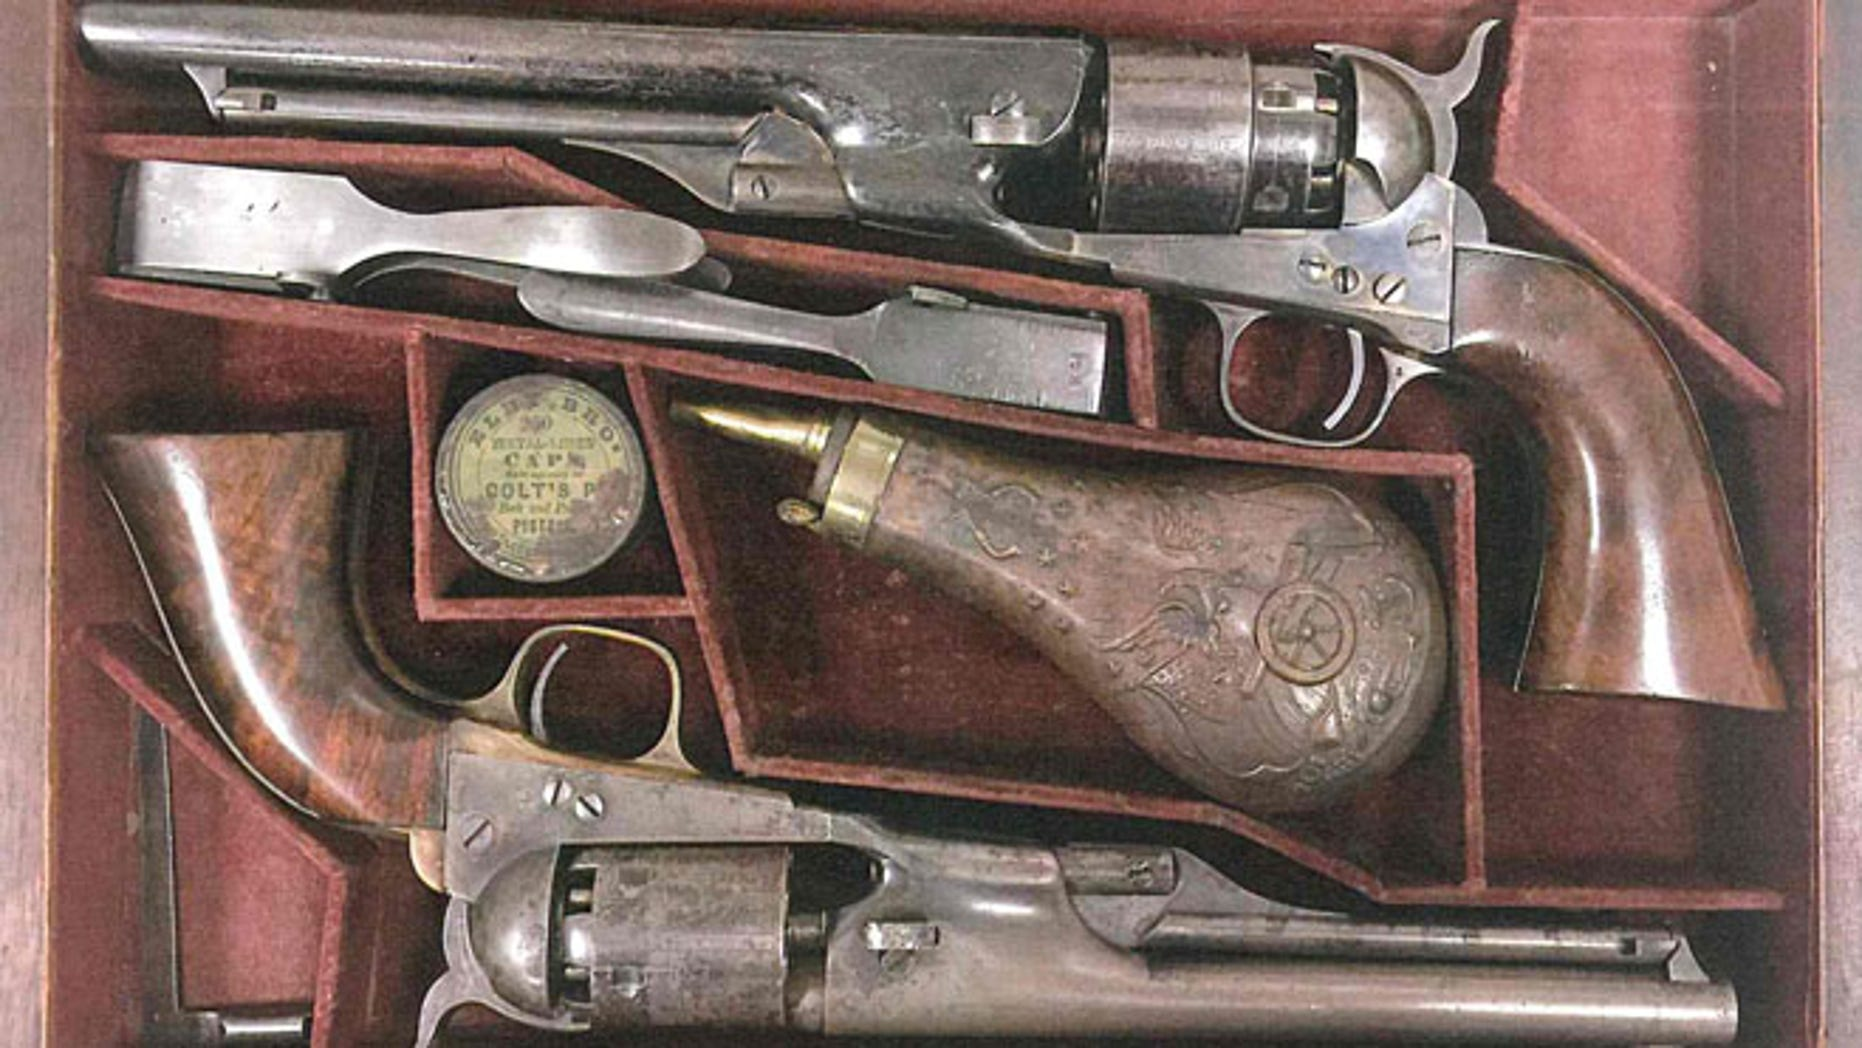 Simon Cameron guns stolen in 2016 from the National Civil War Museum in Harrisburg, Pa.